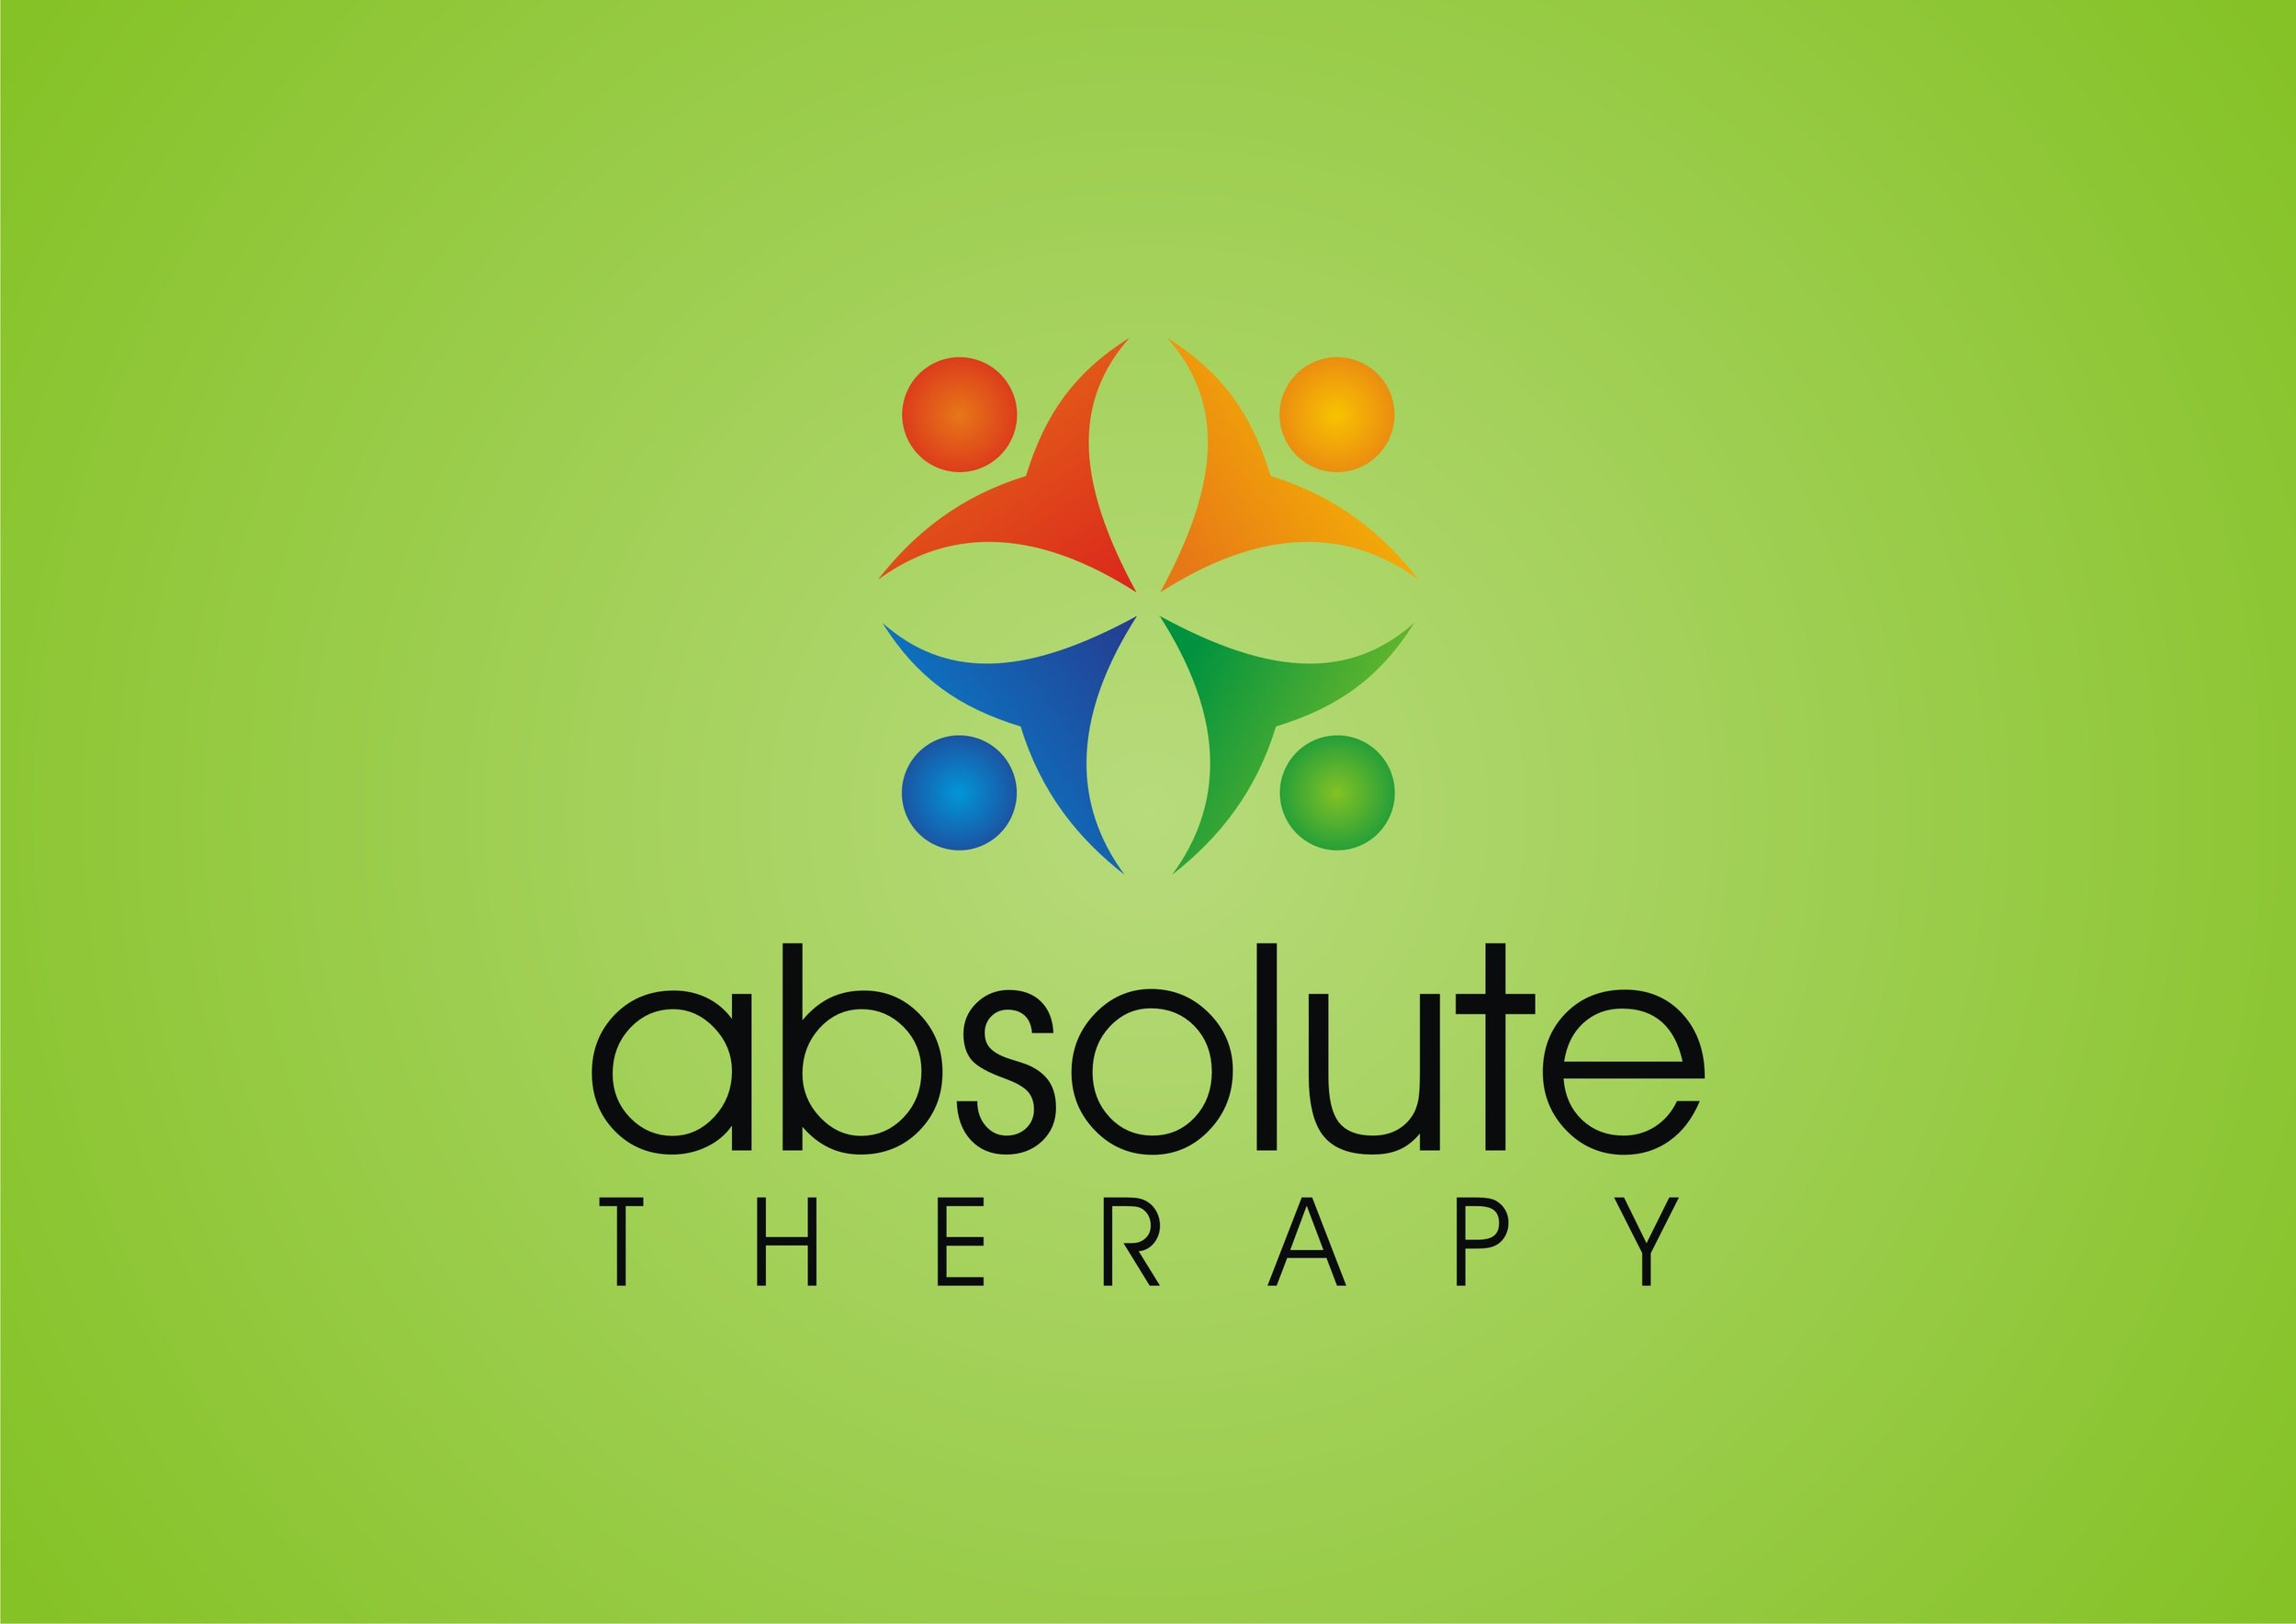 Absolute Therapy - Absolute provides Athletic Therapy, Massage Therapy, Chiropractic Treatment, TMC & Acupuntcure as well as Yoga classes. A full service clinic. 2018TriStars Members will receive 15 mins free on all initial therapy sessions. Approx $25 off per modality offered.Website: Absolute Therapy